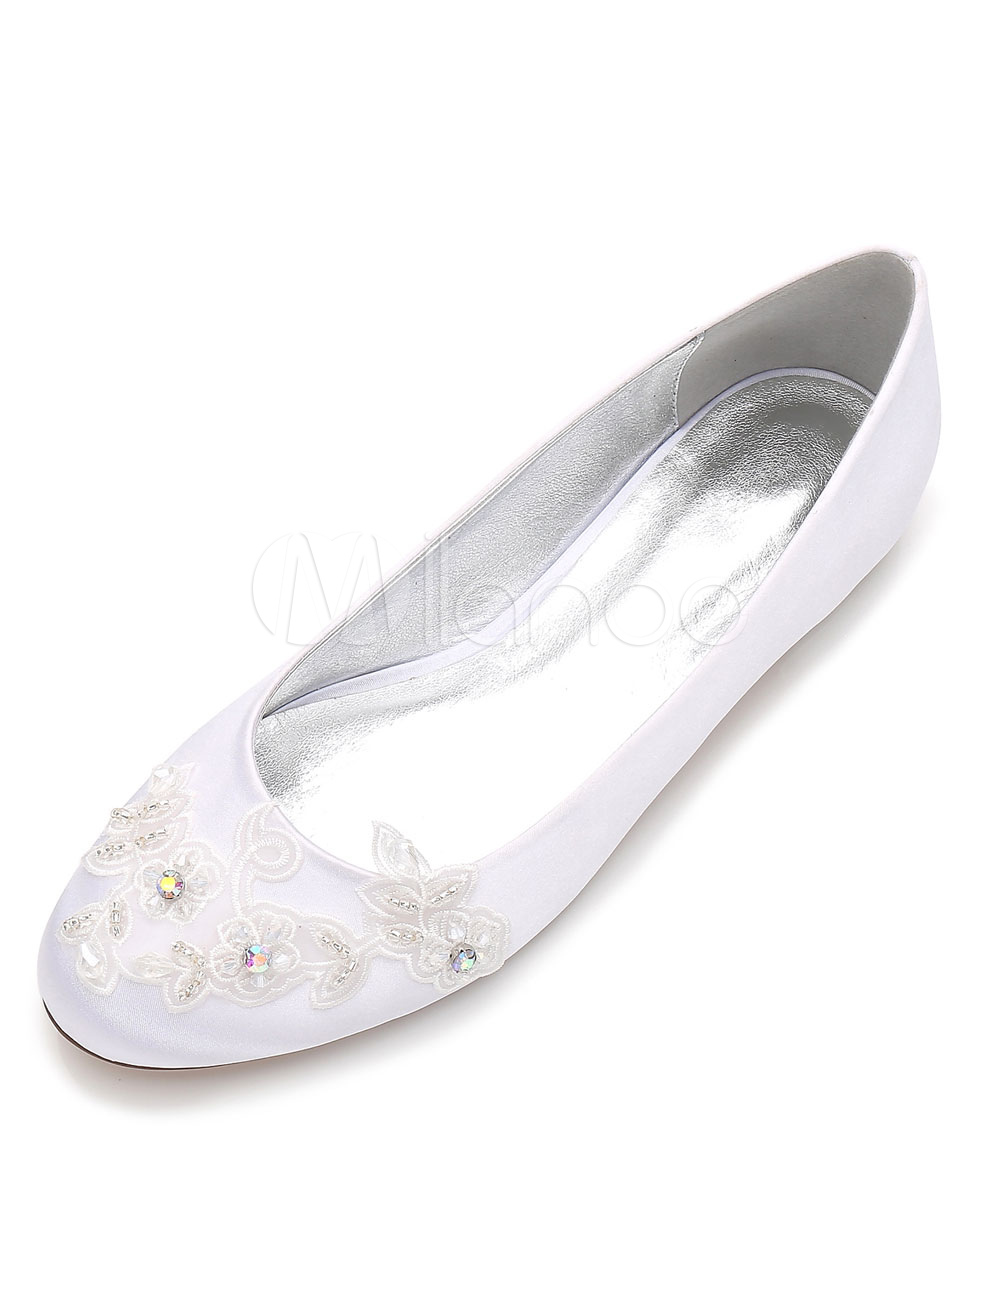 Buy White Wedding Shoes Satin Round Toe Rhinestones Flowers Beaded Flat Bridal Shoes for $44.99 in Milanoo store